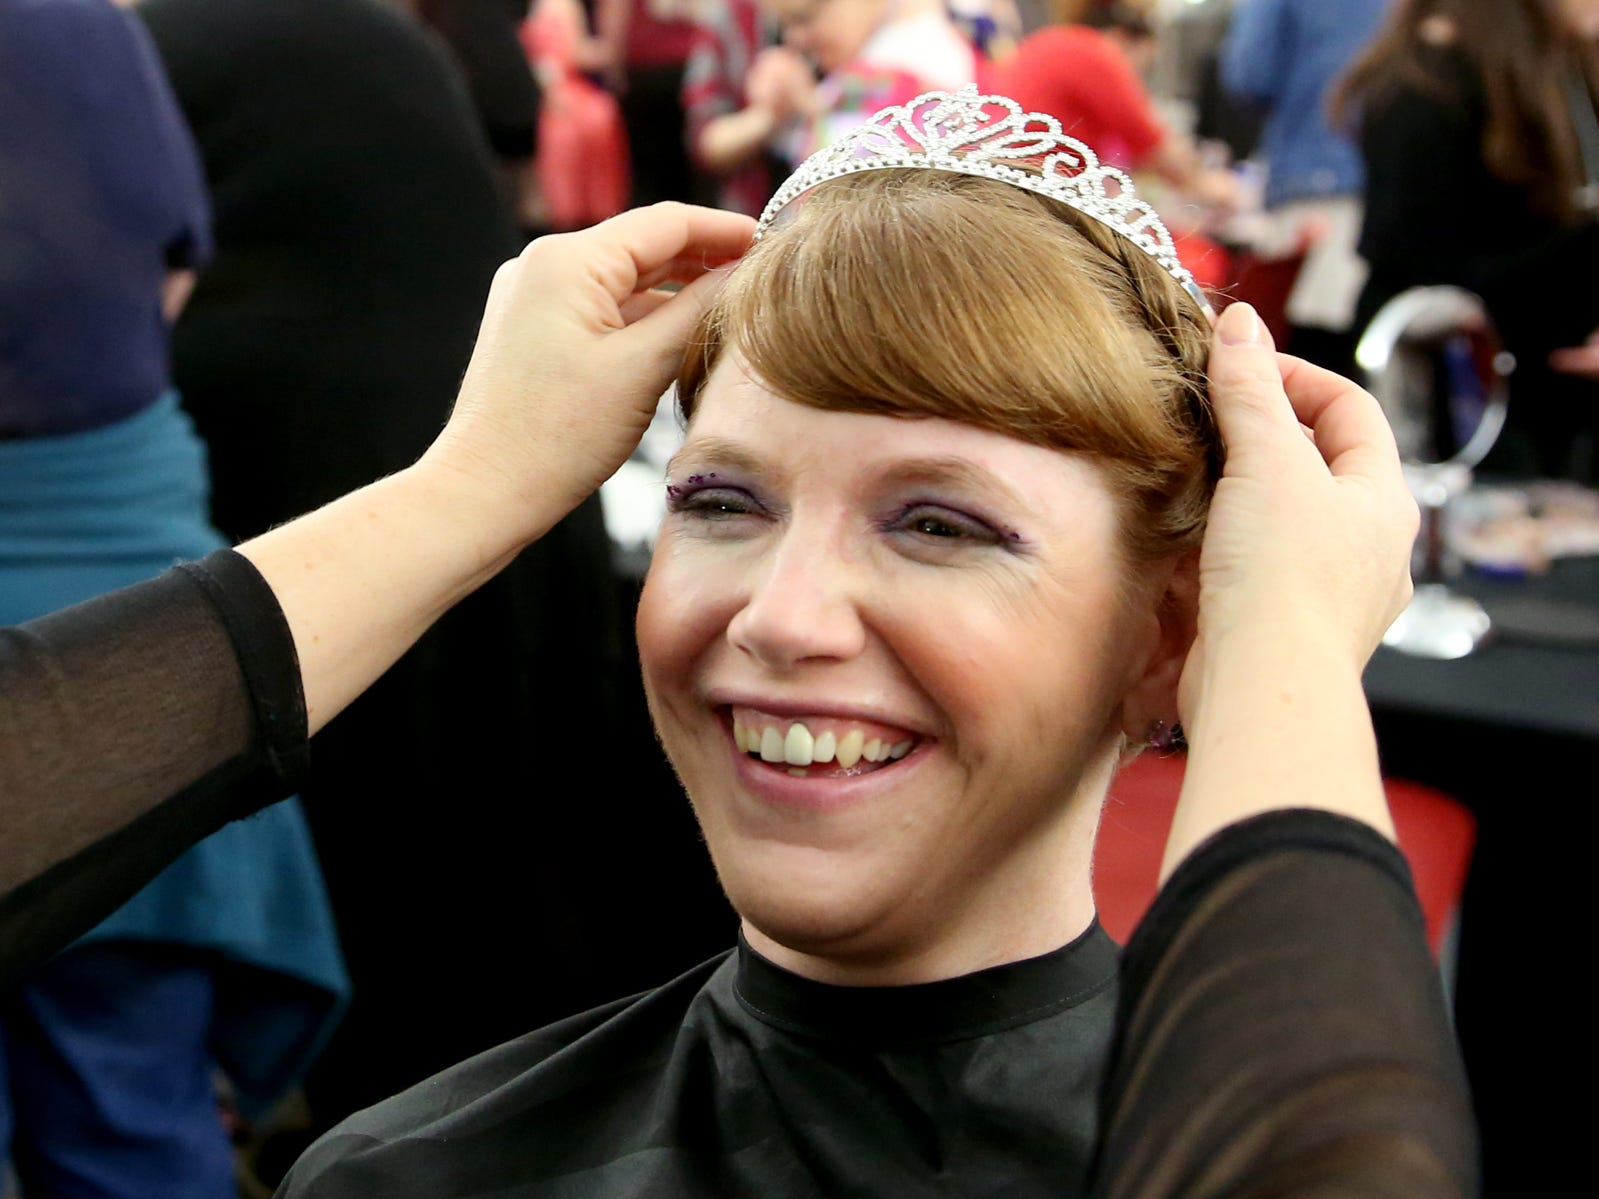 Kris Burden, 36, of Salem, has her hair done by volunteer Janna Reece at Night to Shine, a prom night experience for people with special needs, at Salem Alliance Church on Friday, Feb. 8, 2019.